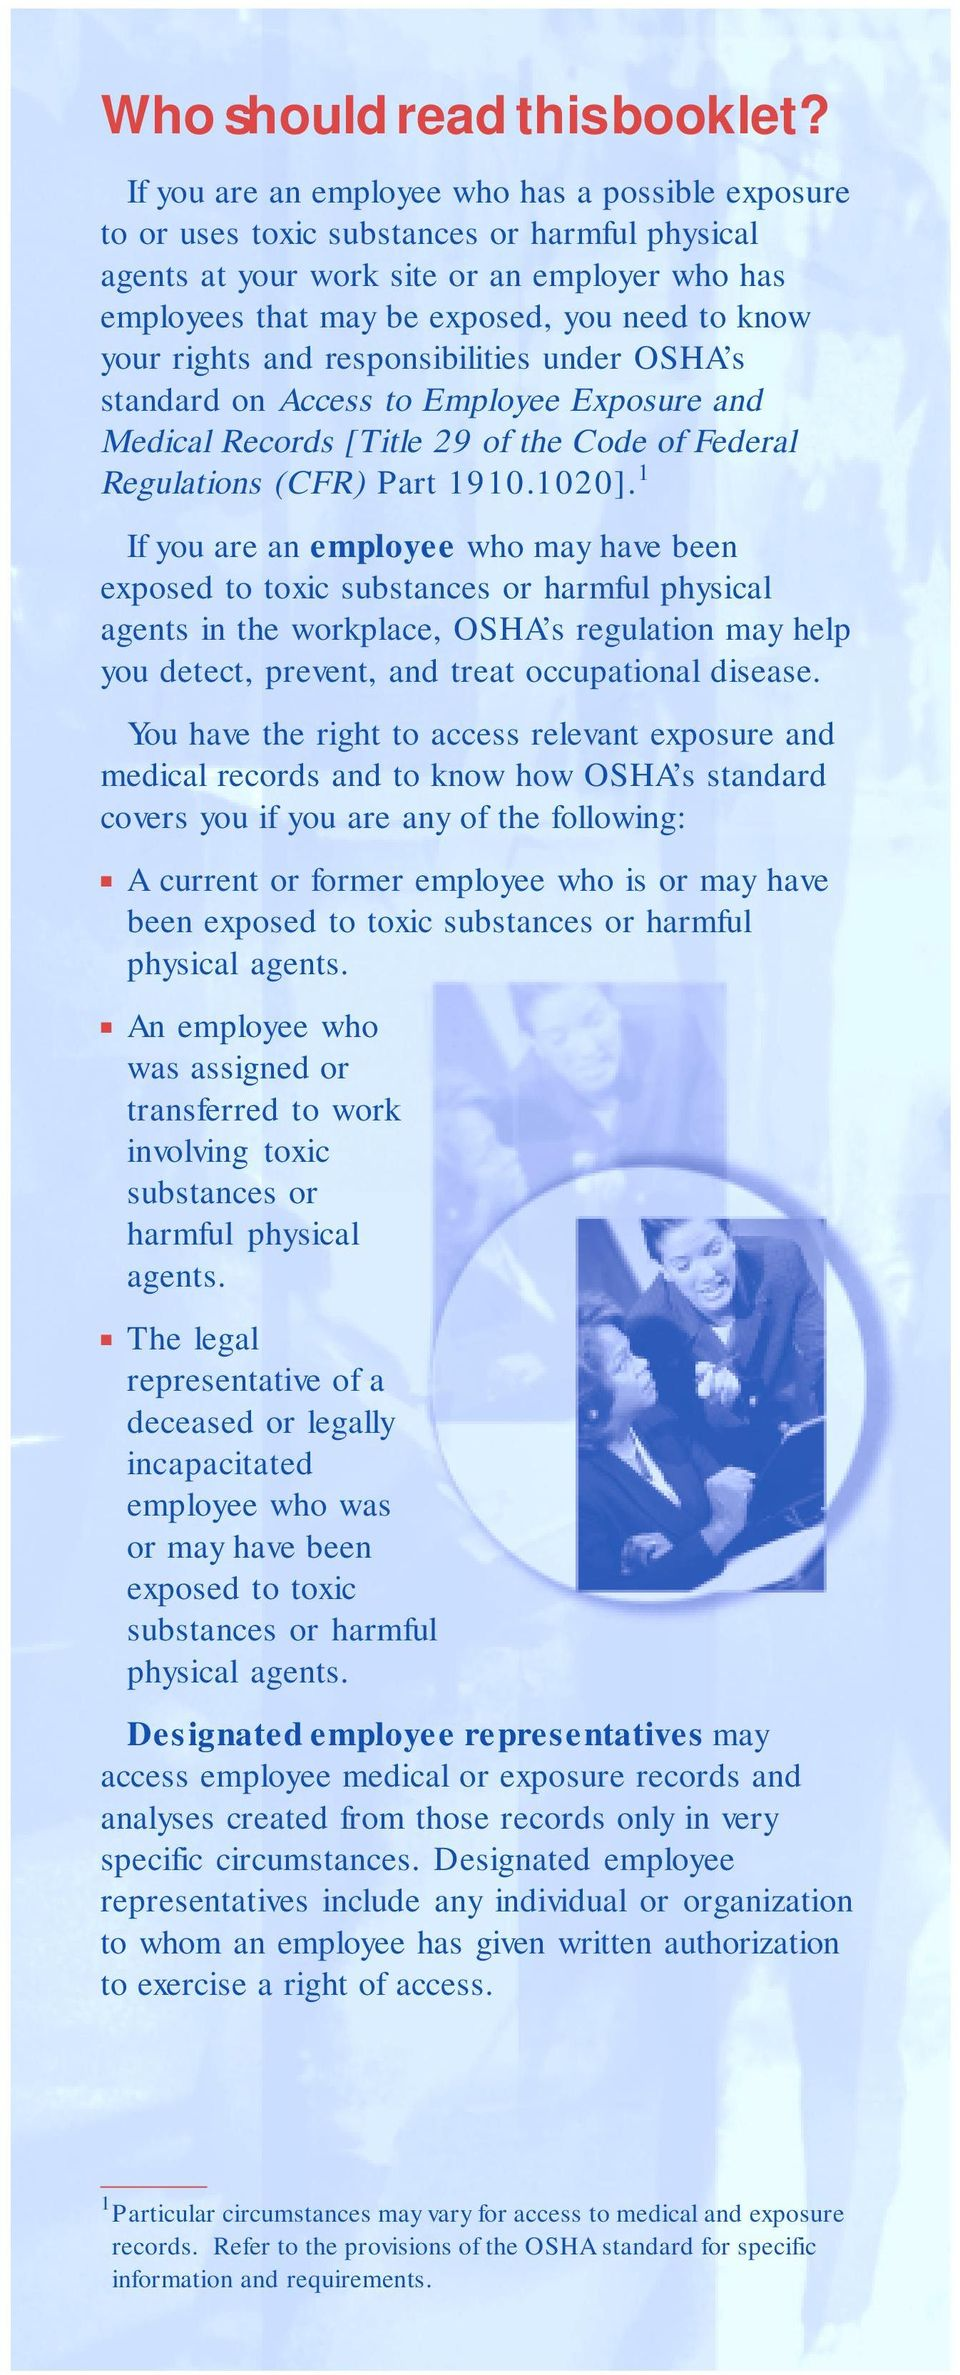 rights and responsibilities under OSHA s standard on Access to Employee Exposure and Medical Records [Title 29 of the Code of Federal Regulations (CFR) Part 1910.1020].